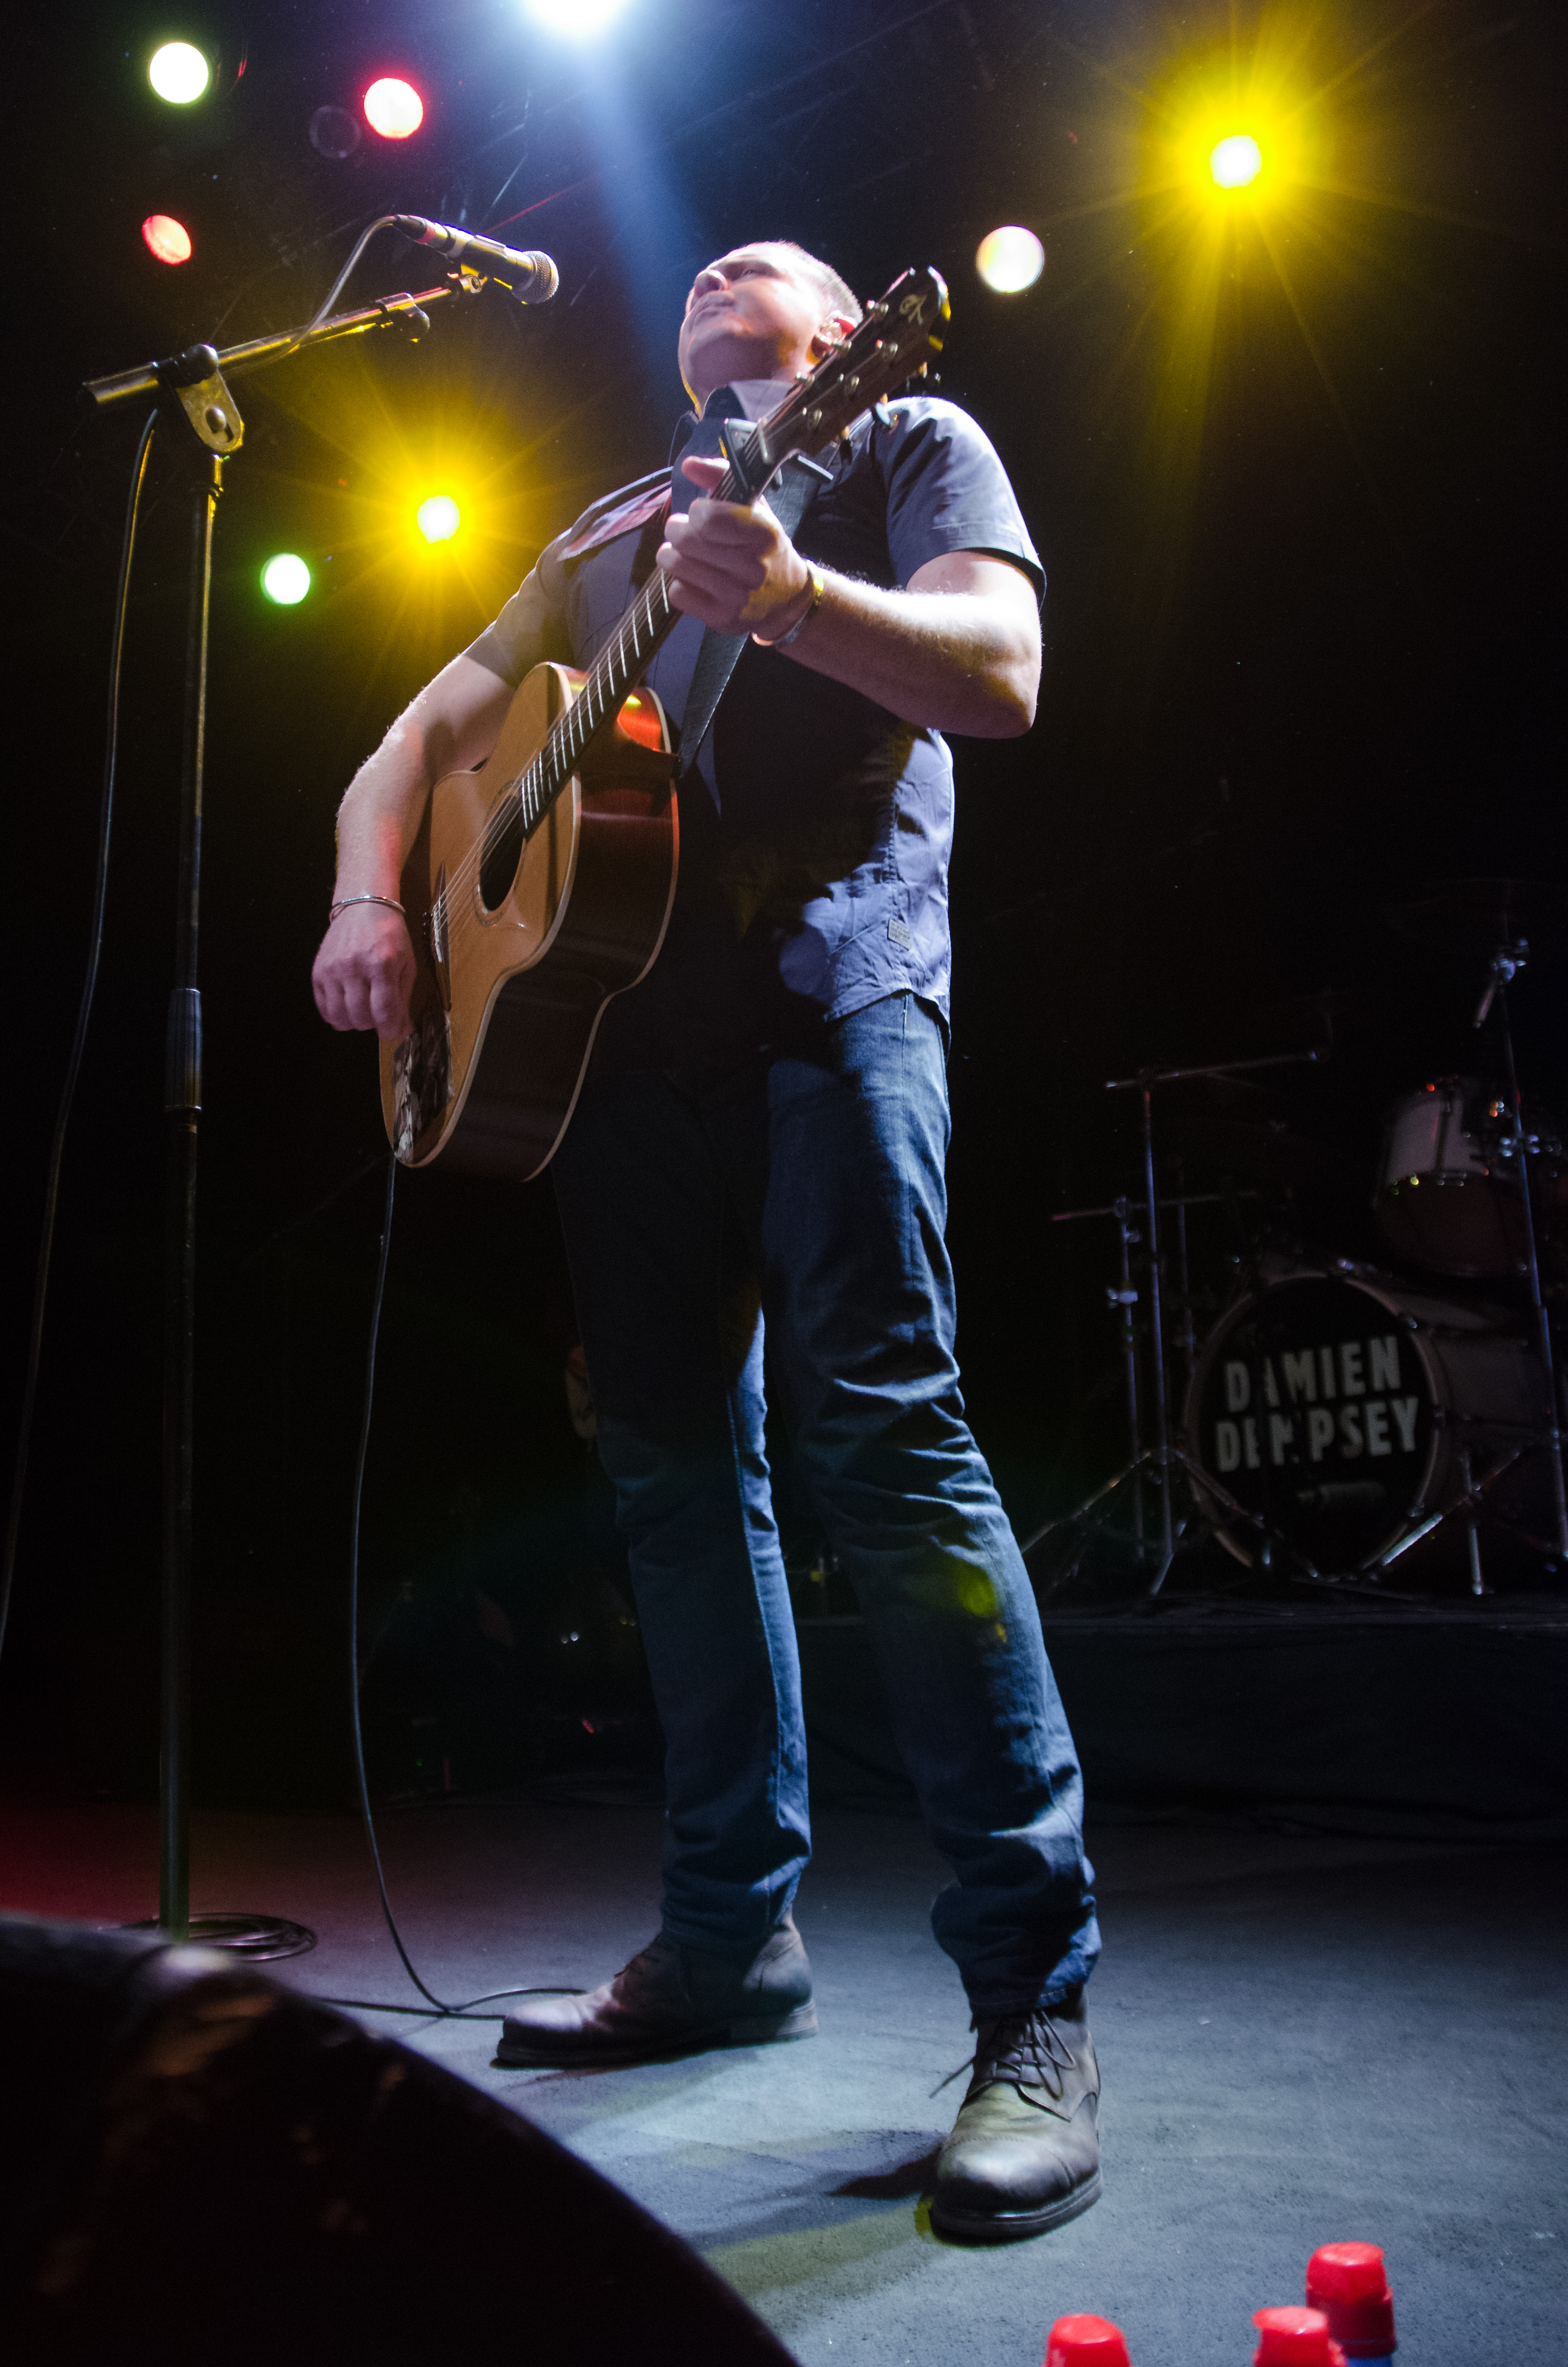 damien-dempsey-at-vicar-street-by-sean-smyth-9-12-15-23-of-34